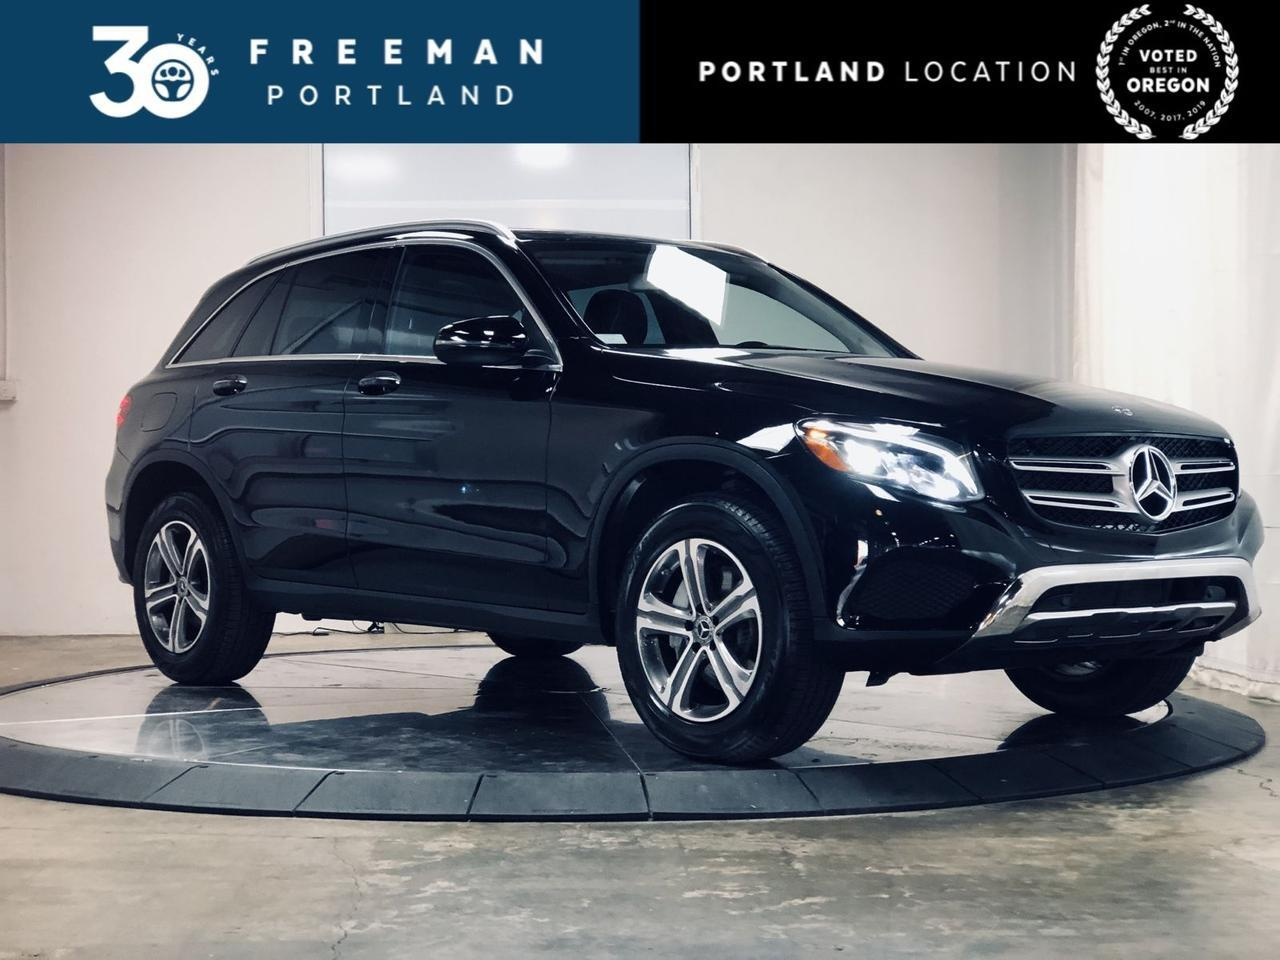 2018 Mercedes-Benz GLC 300 Heated Steering Wheel Apple CarPlay Illuminated Star Portland OR